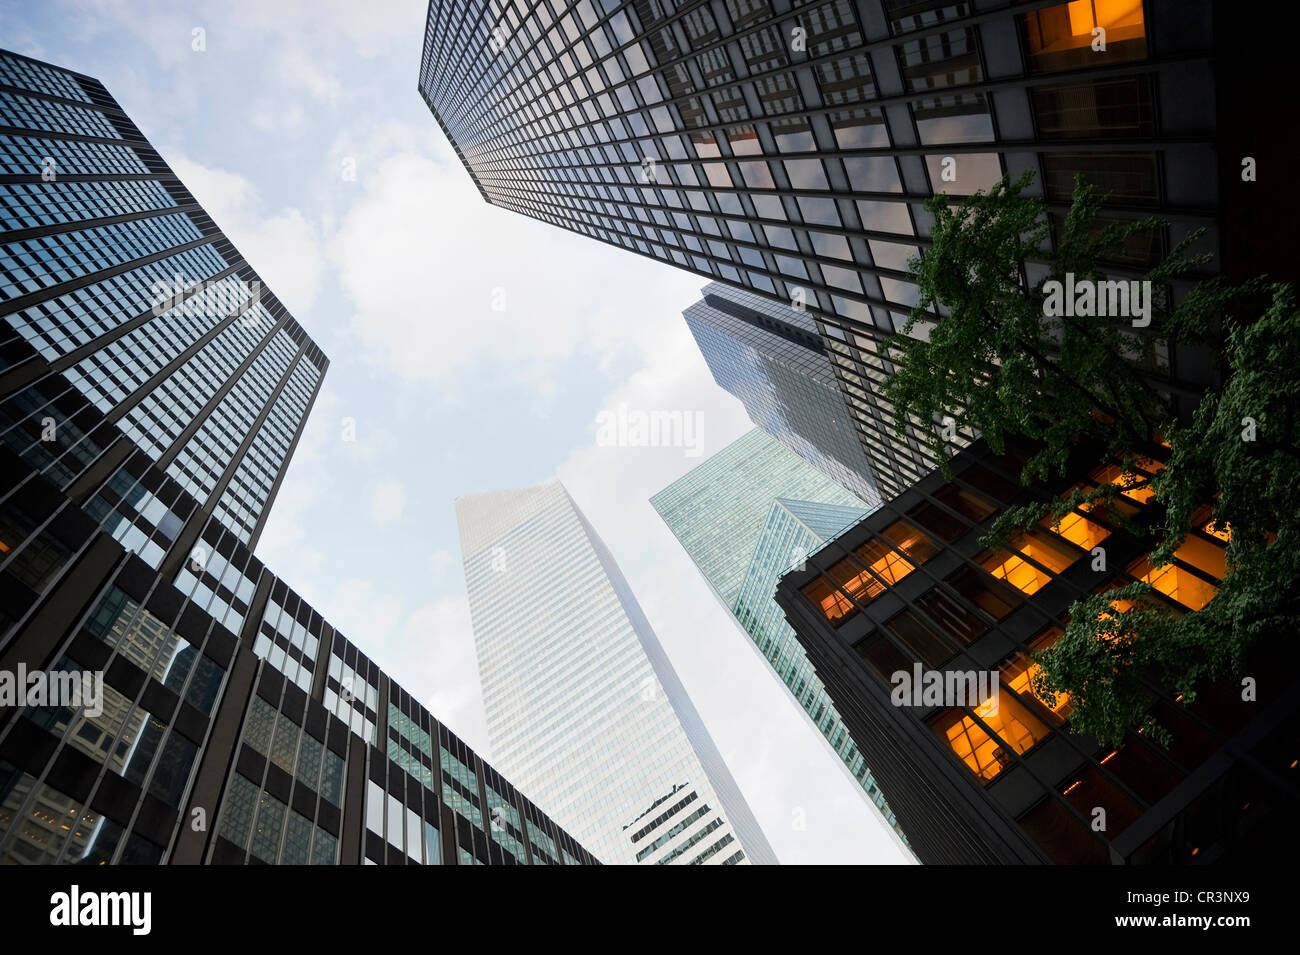 High-rise buildings, Park Avenue, Manhattan, New York, USA, America - Stock Image